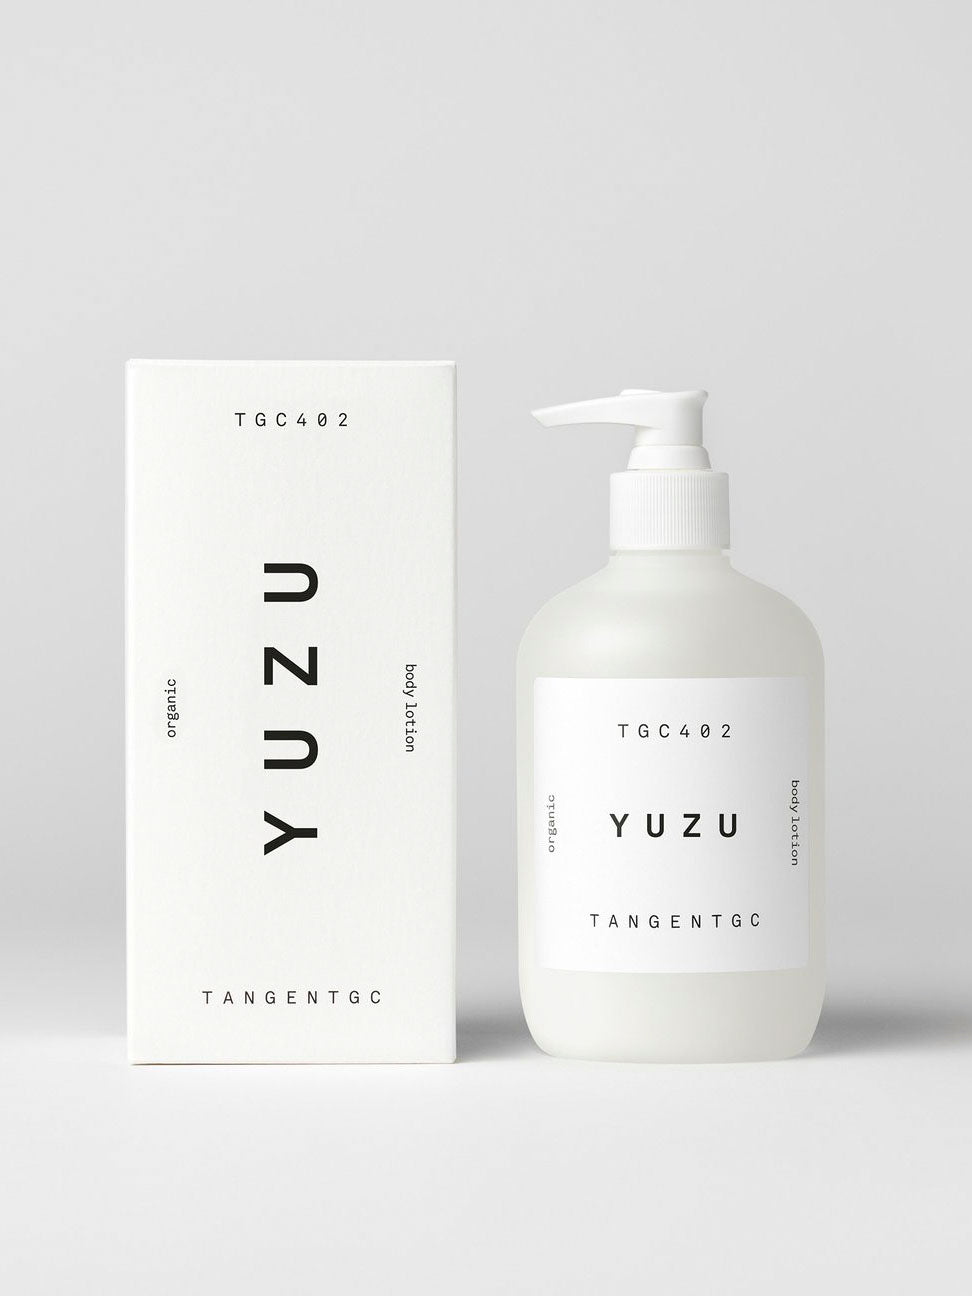 TGC402 Yuzu Organic Body Lotion Tangent GC